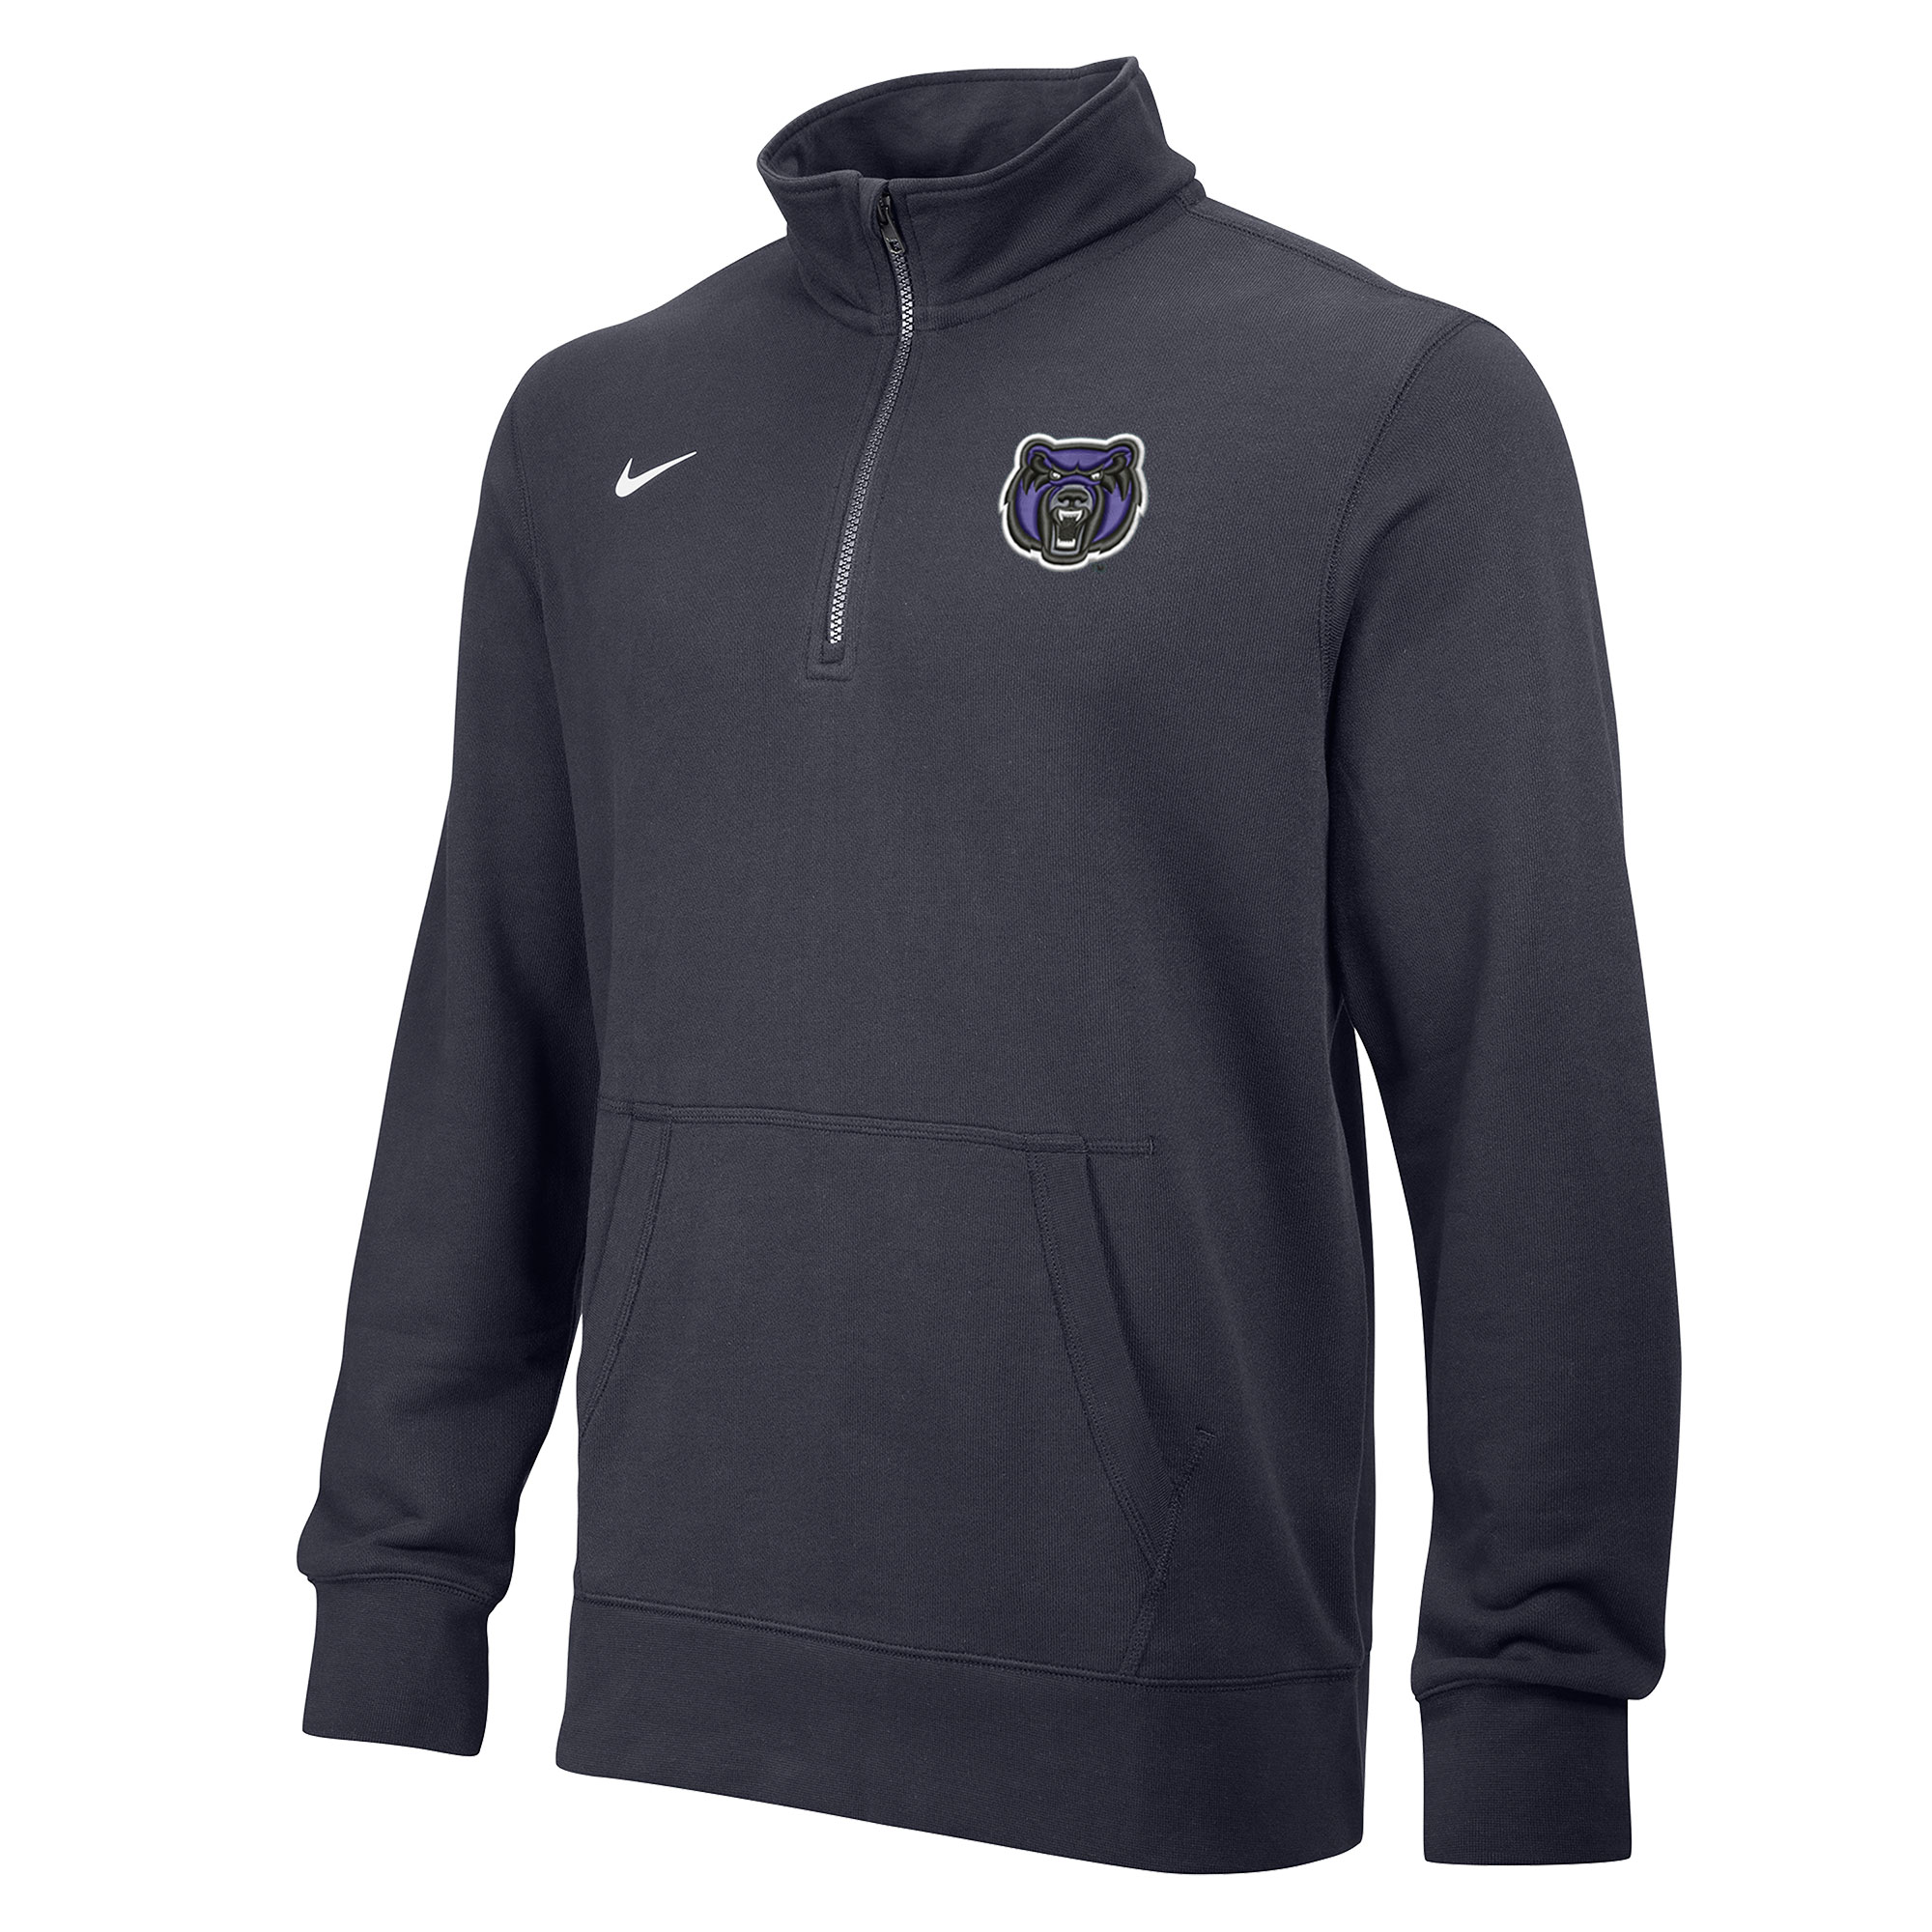 Stadium Club 1/4 Zip Fleece